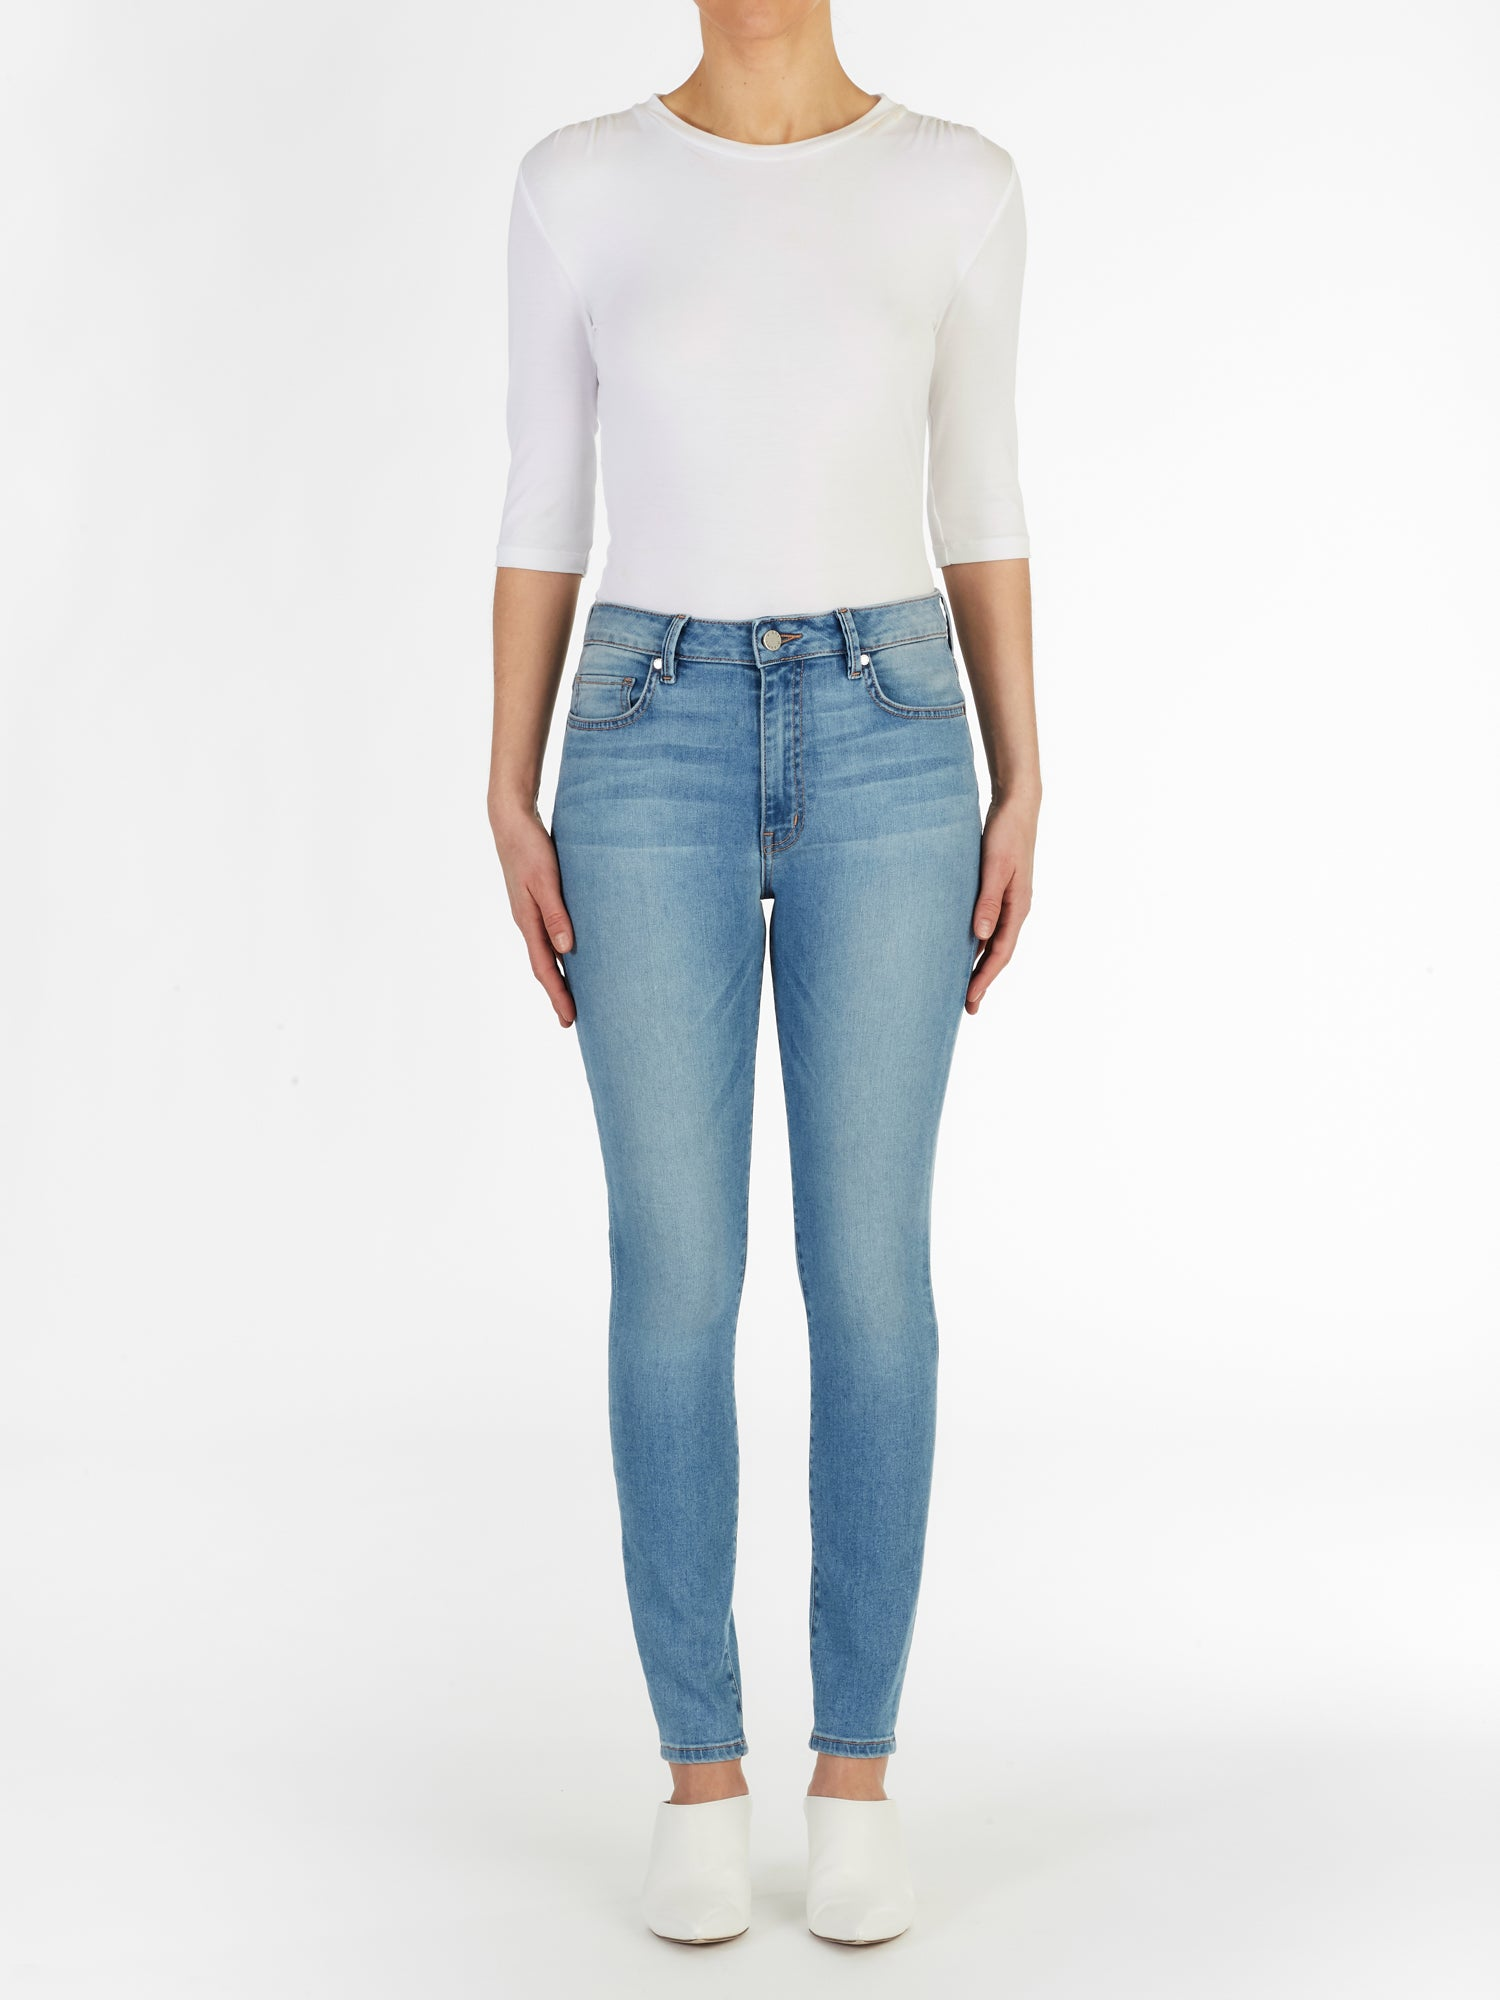 High Waist Skinny Jeans in Italian Stretch Denim